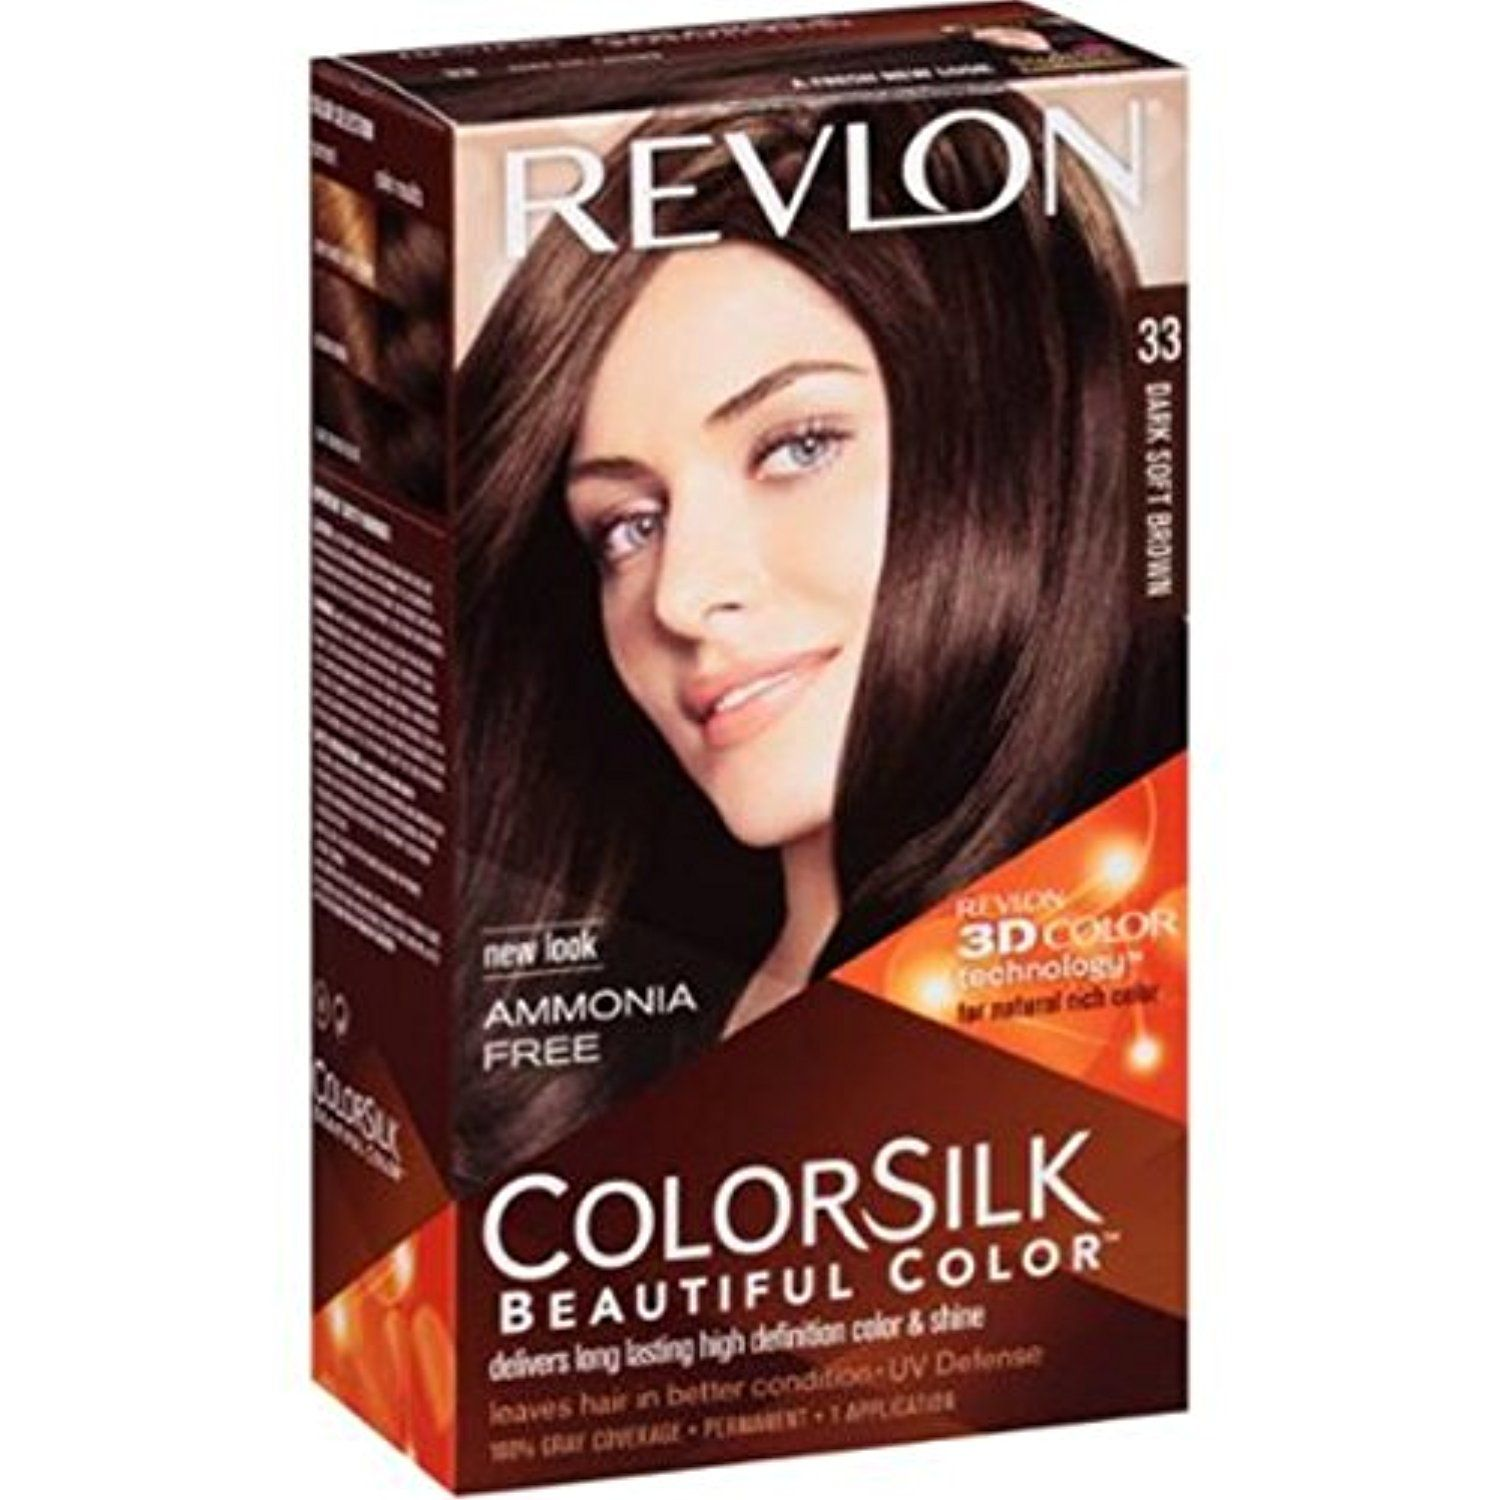 Colorsilk beautiful color 55 light reddish brown by revlon hair color - Revlon Colorsilk Beautiful Color Medium Brown Our Revlon 3d Color Technology Delivers Natural Looking Multi Tonal Color From Root To Tip Not On